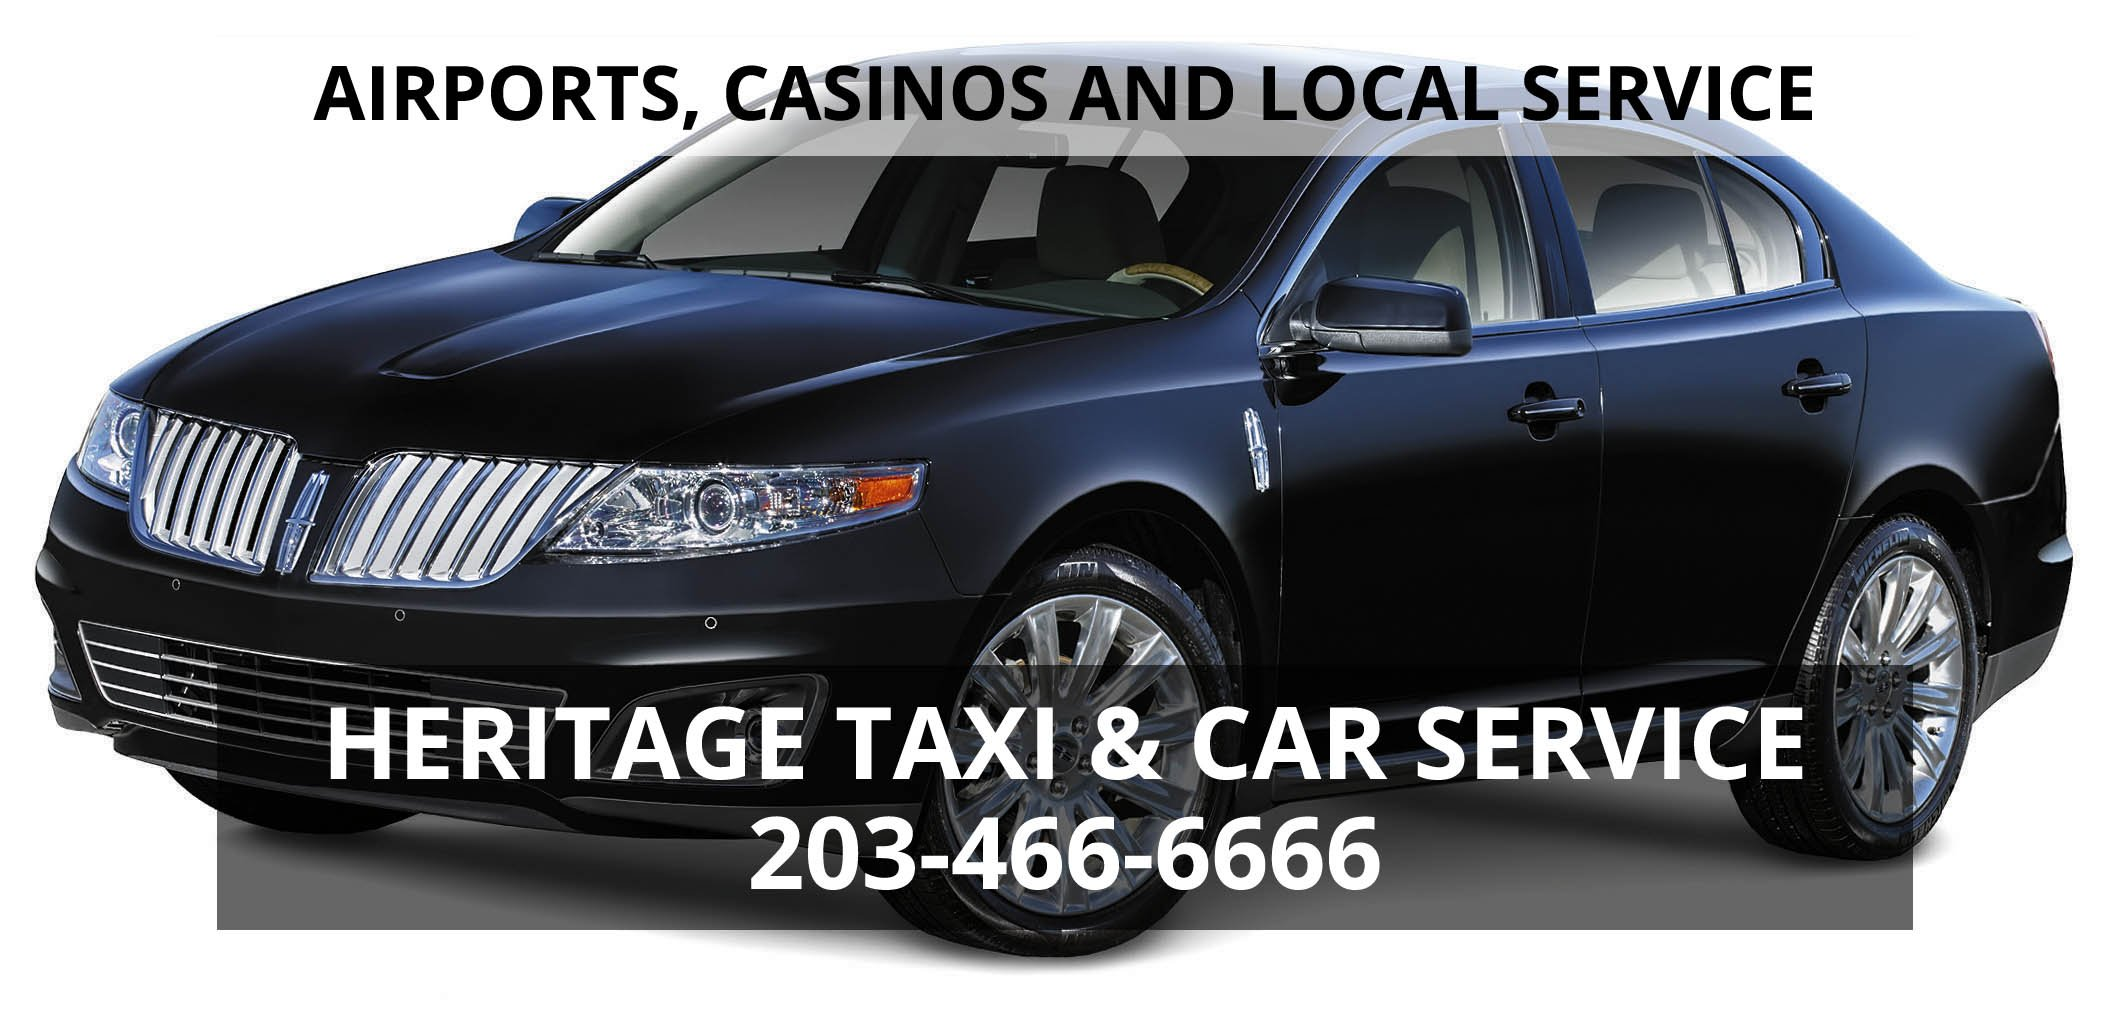 Heritage Taxi and Limo